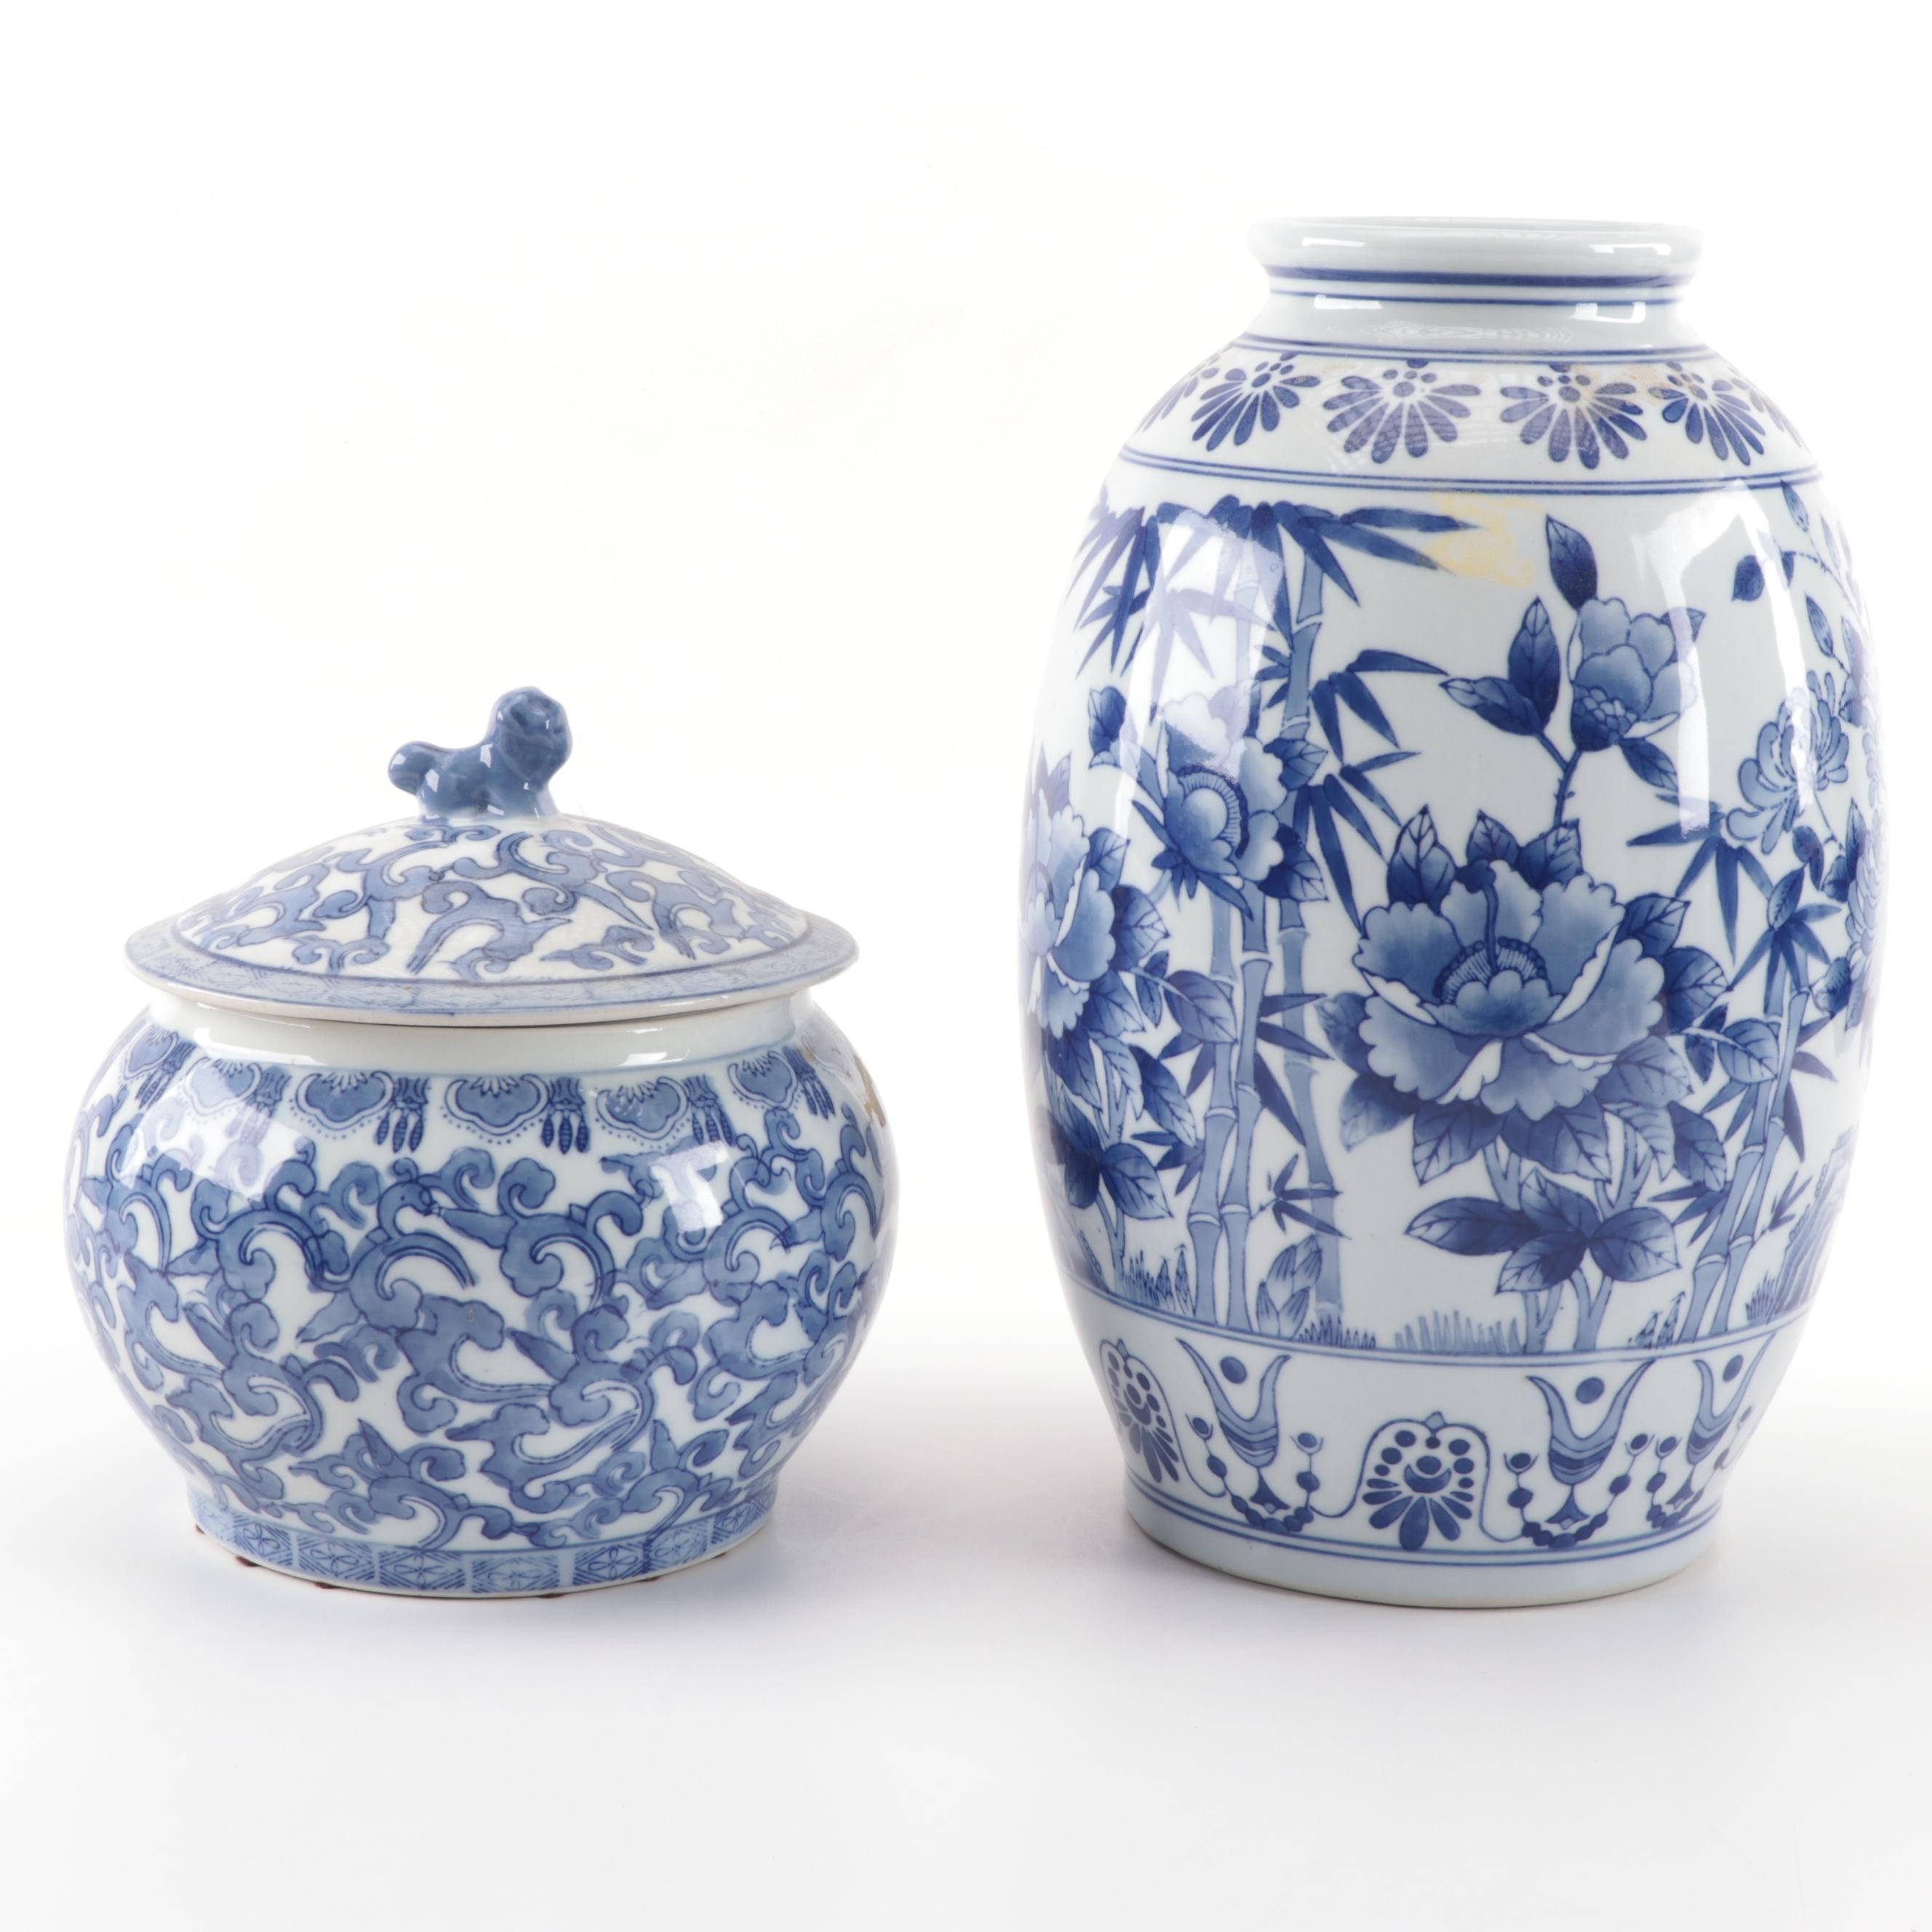 Ethan Allen Blue on White Ceramic Covered Pot with Chinese Blue on White Vase